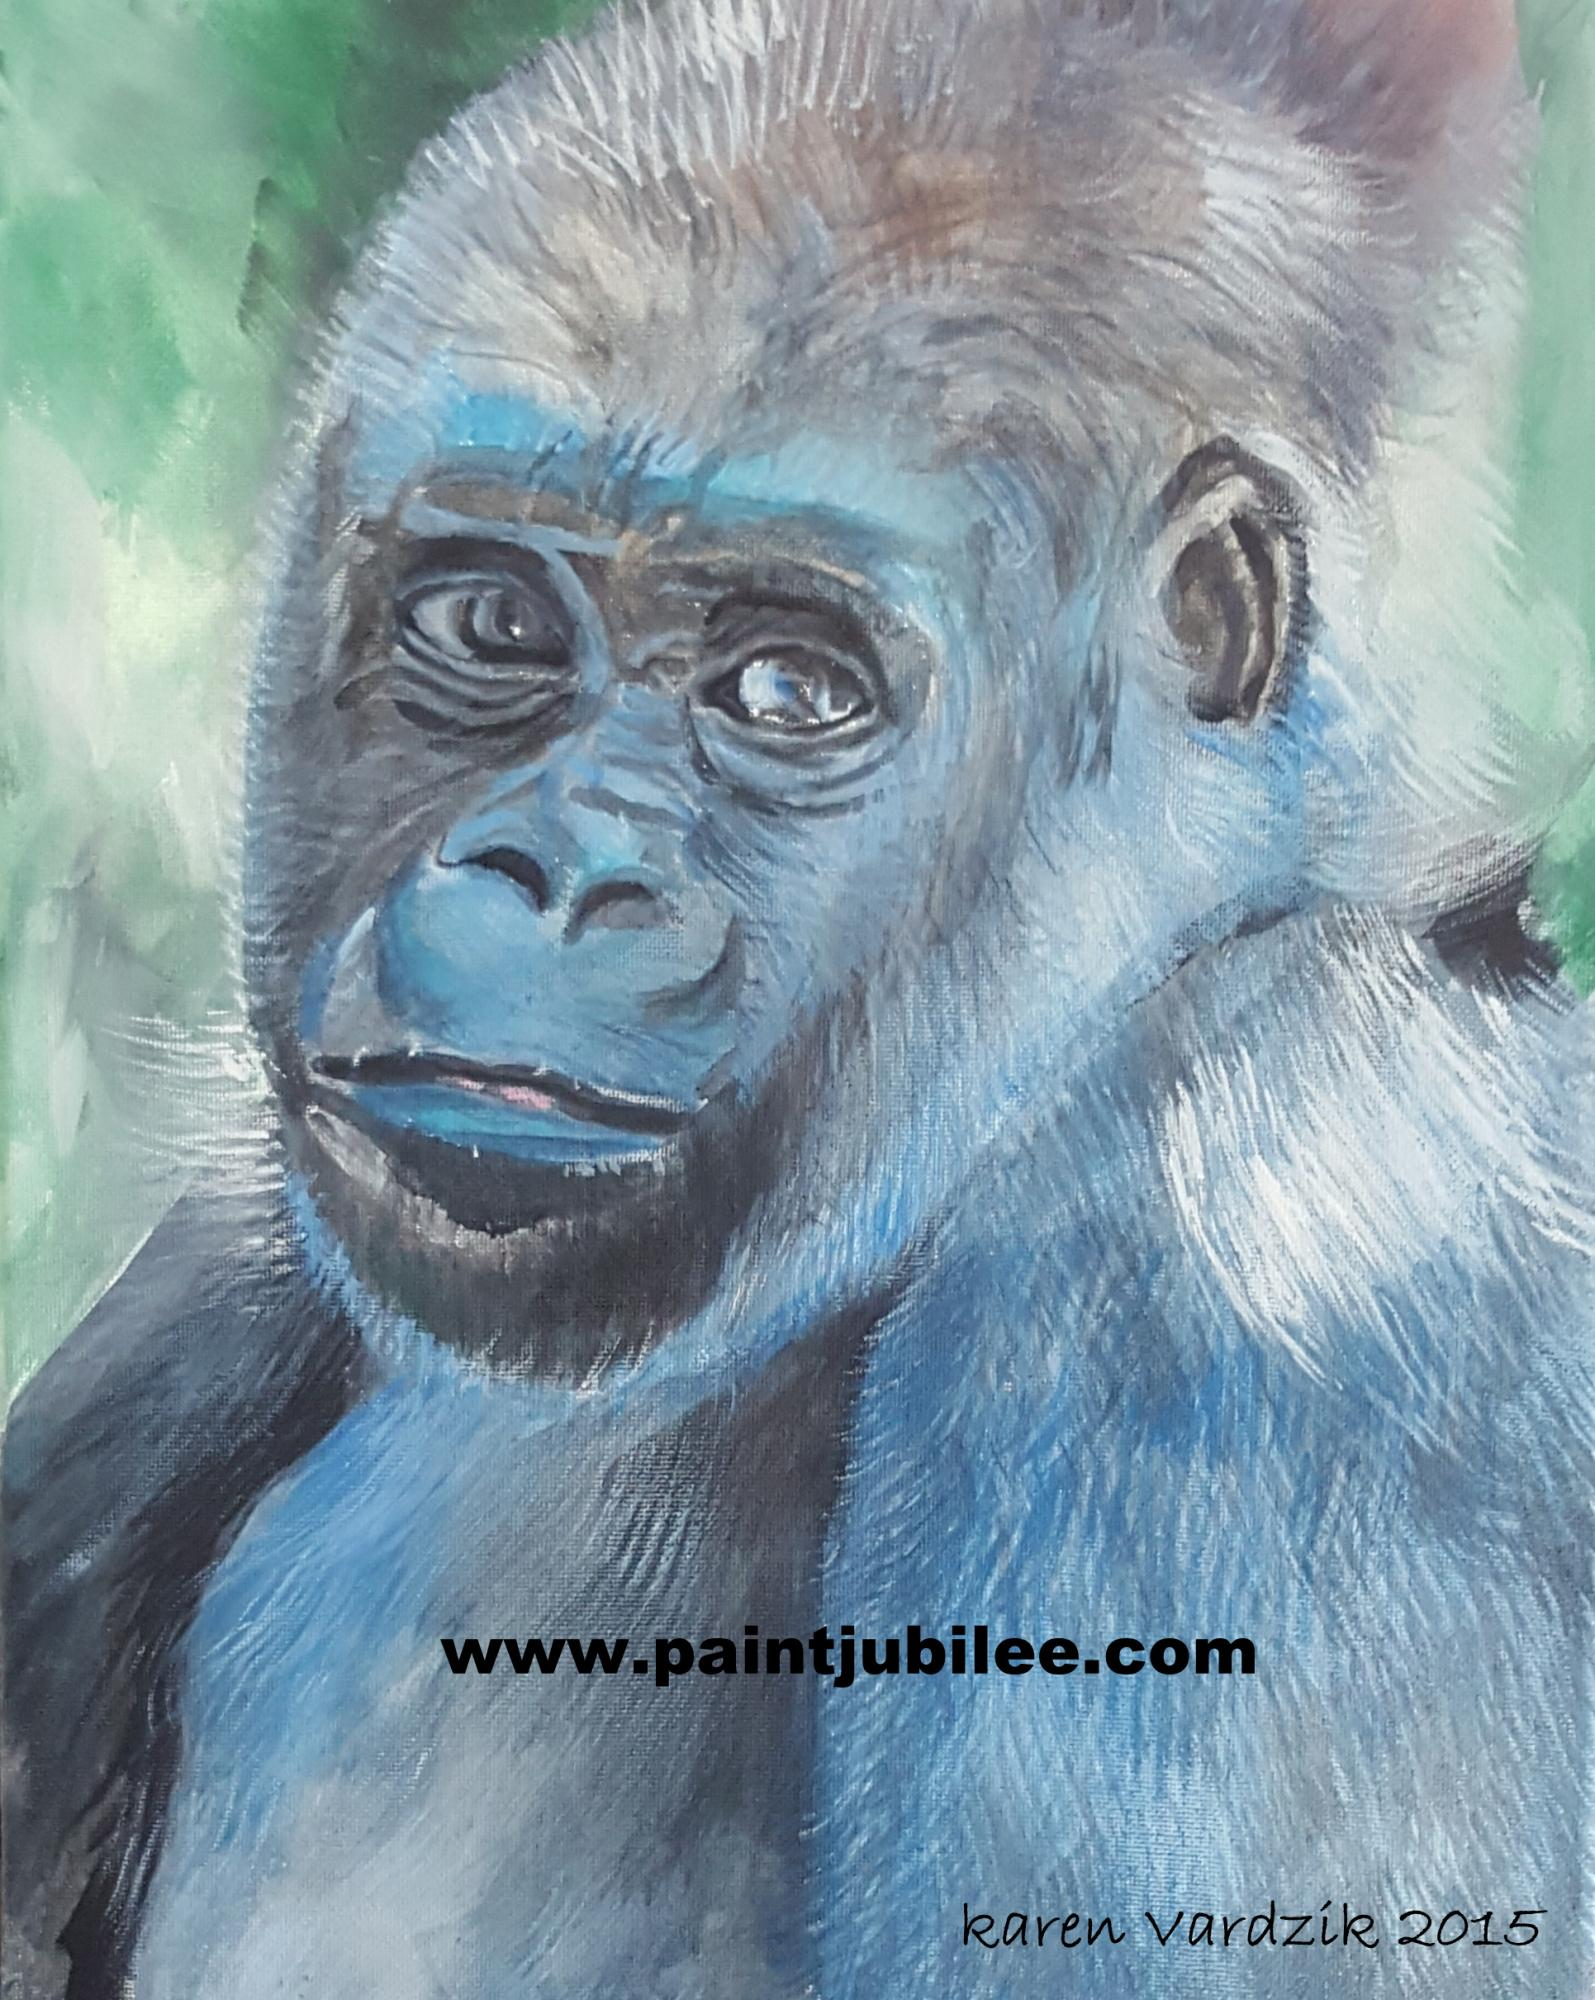 Mountain_gorilla-001.jpg